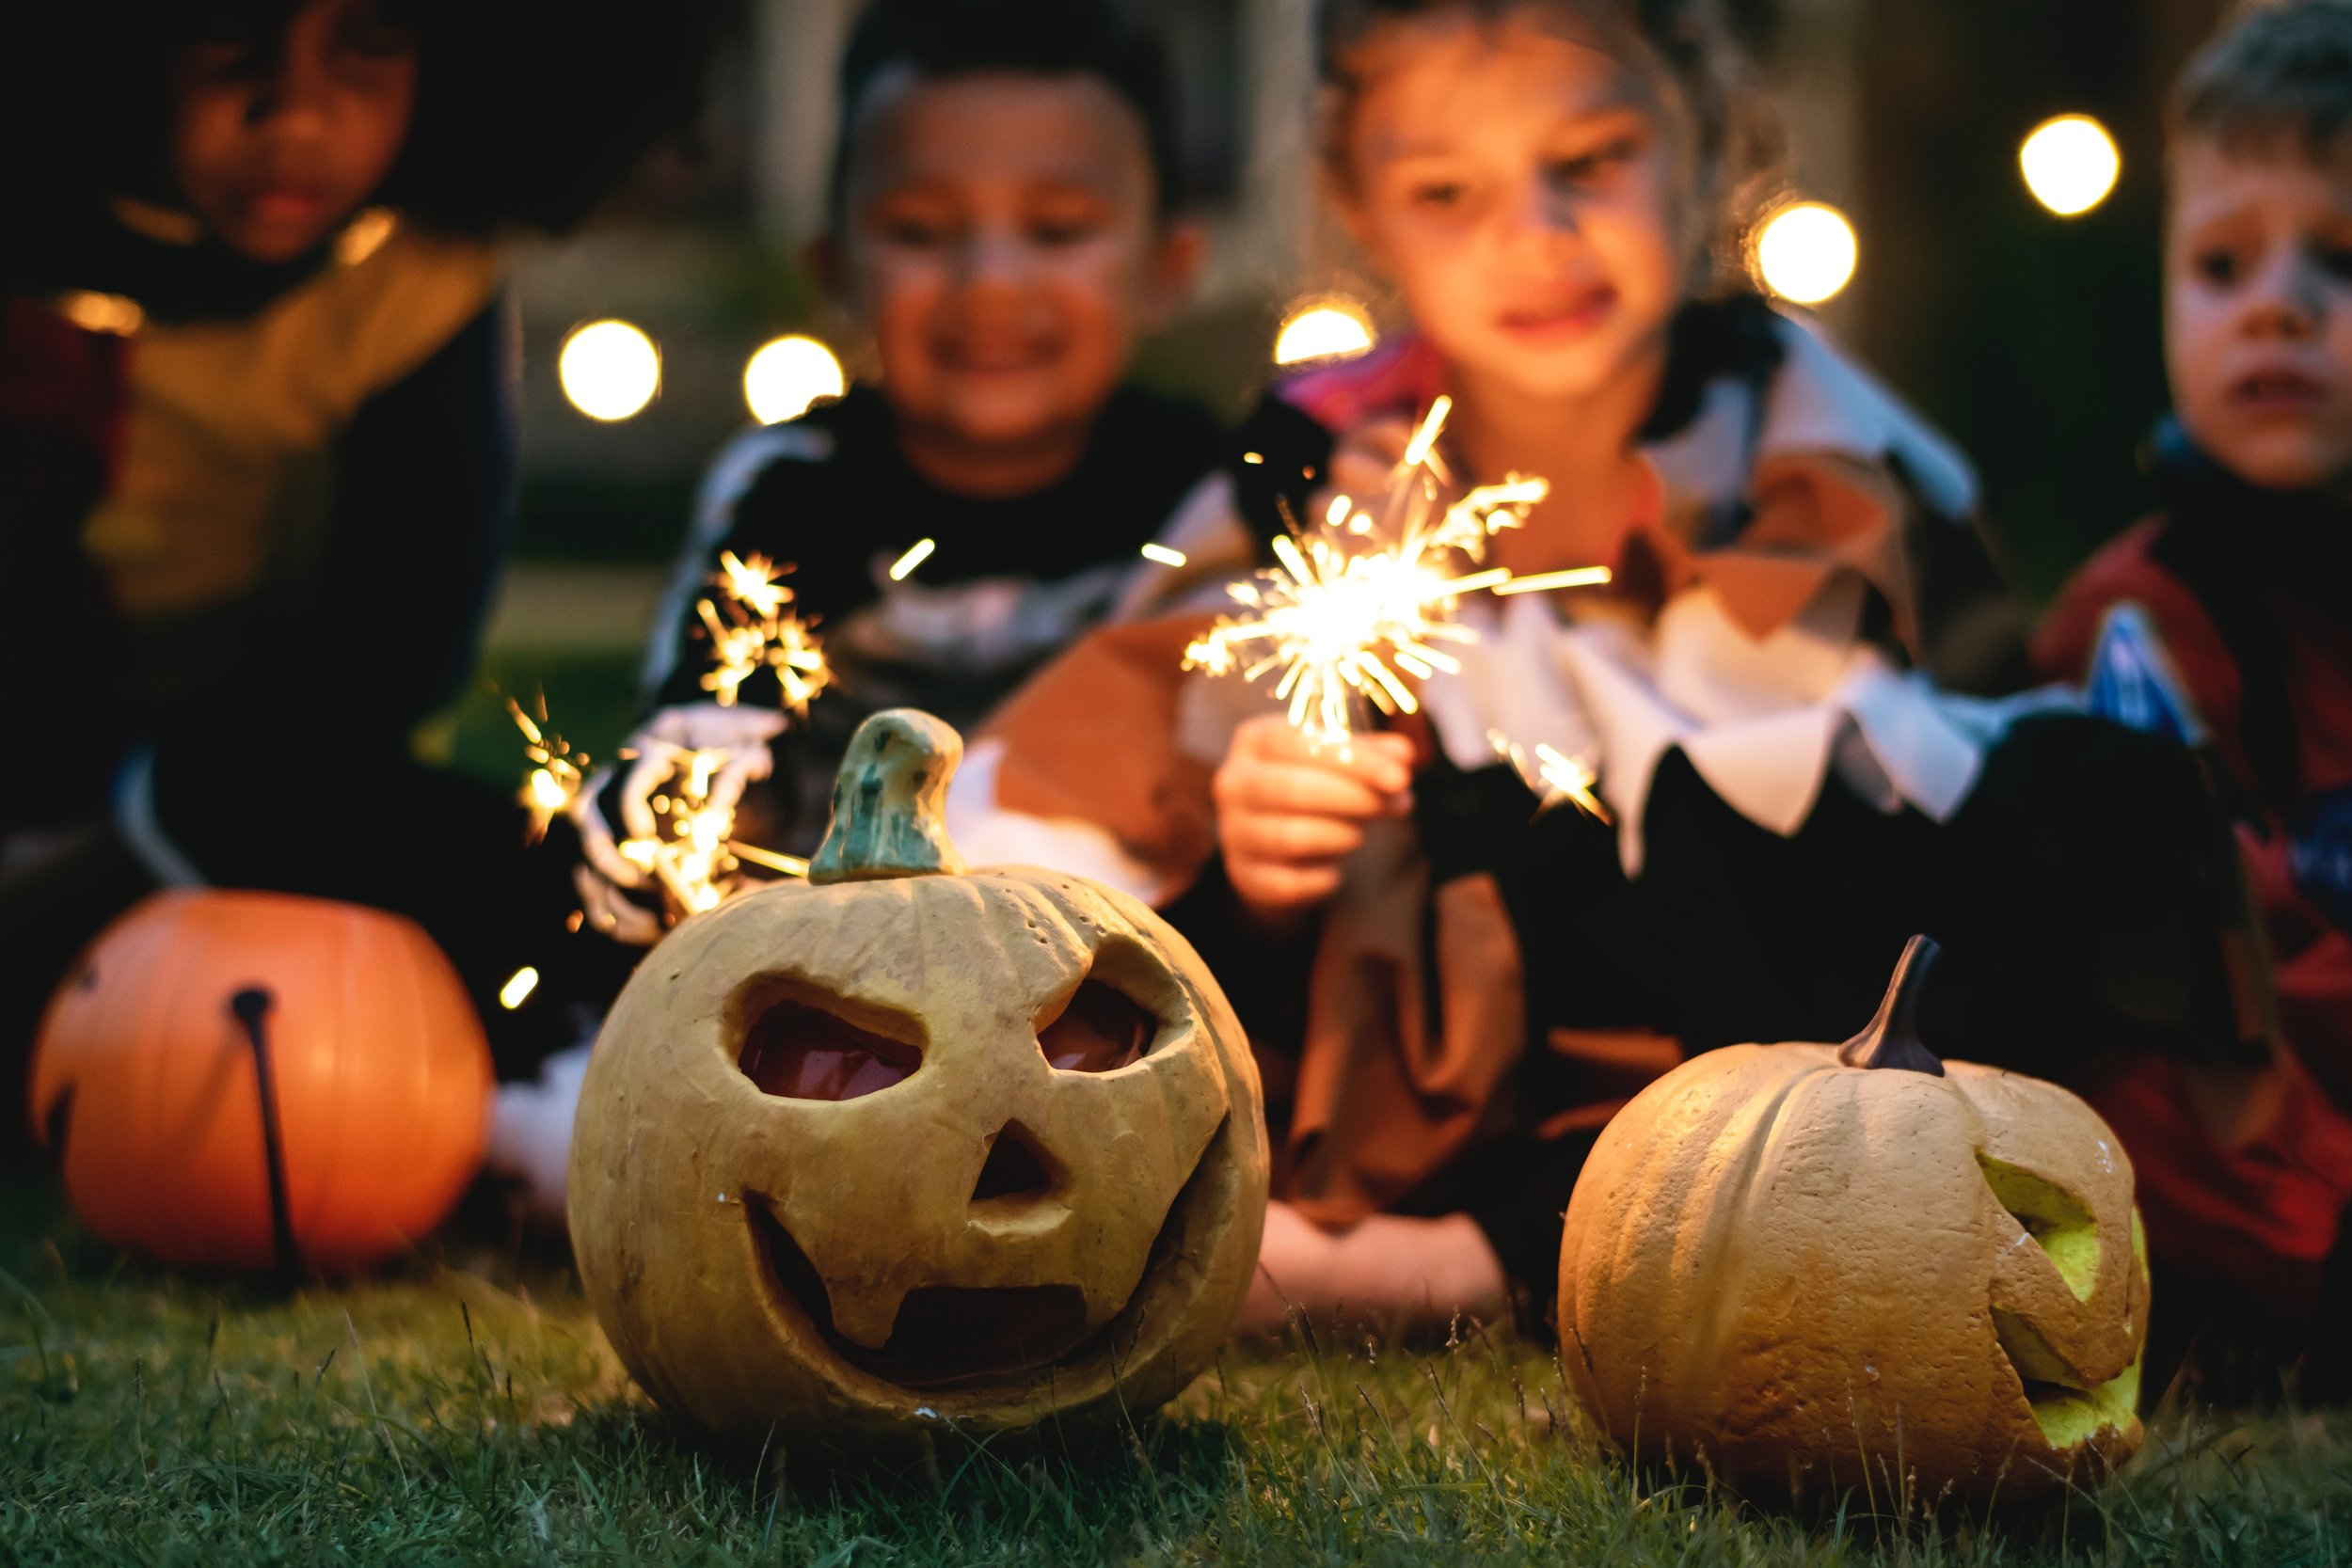 Halloween_children_rawpixel-798161-unsplash.jpg